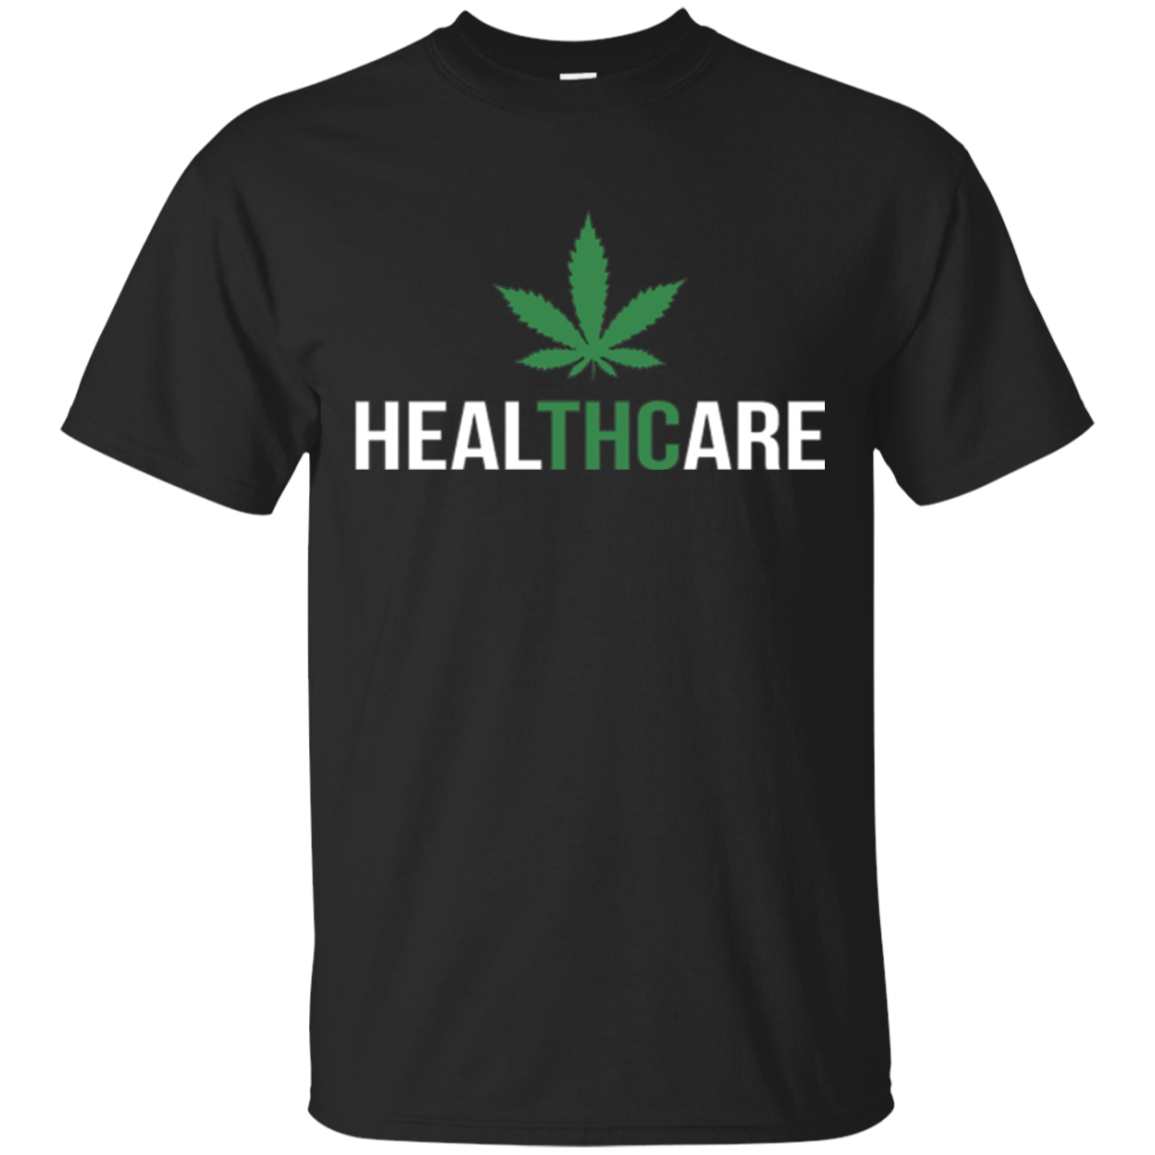 Medical Marijuana Healthcare T-Shirt | THC Canabis Shirt